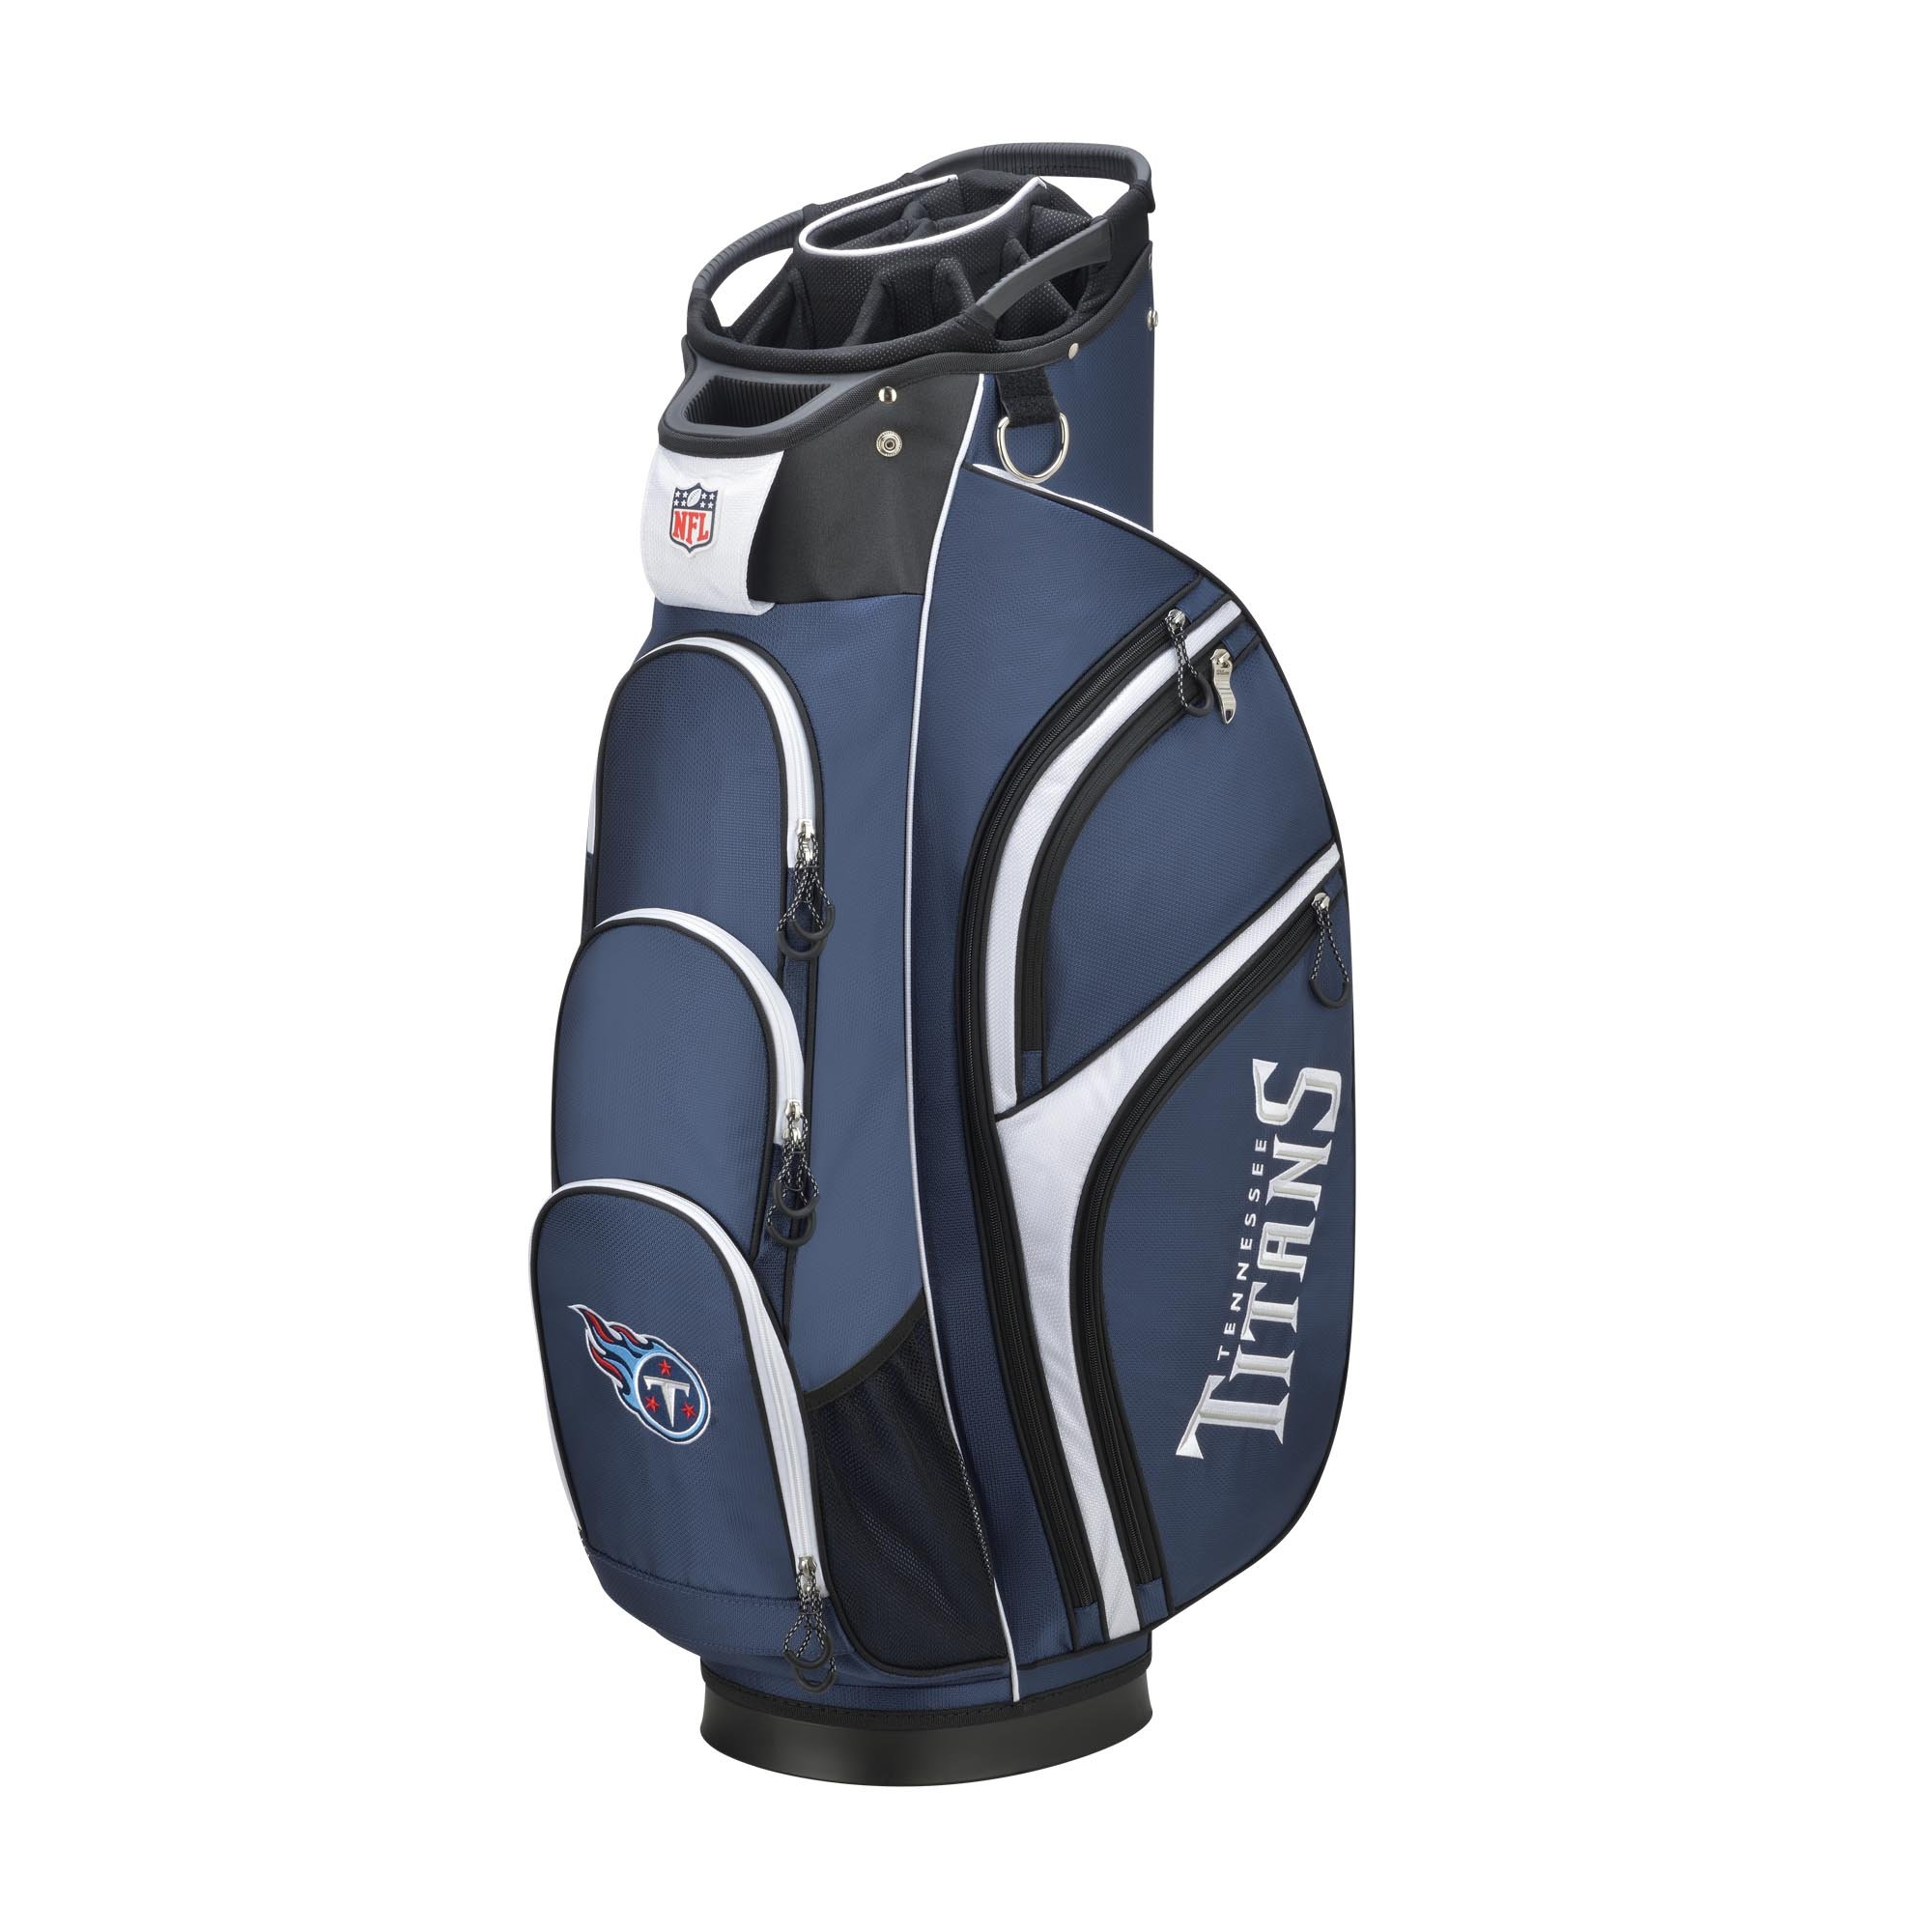 Wilson 2018 NFL Golf Cart Bag, Tennessee Titans by Wilson